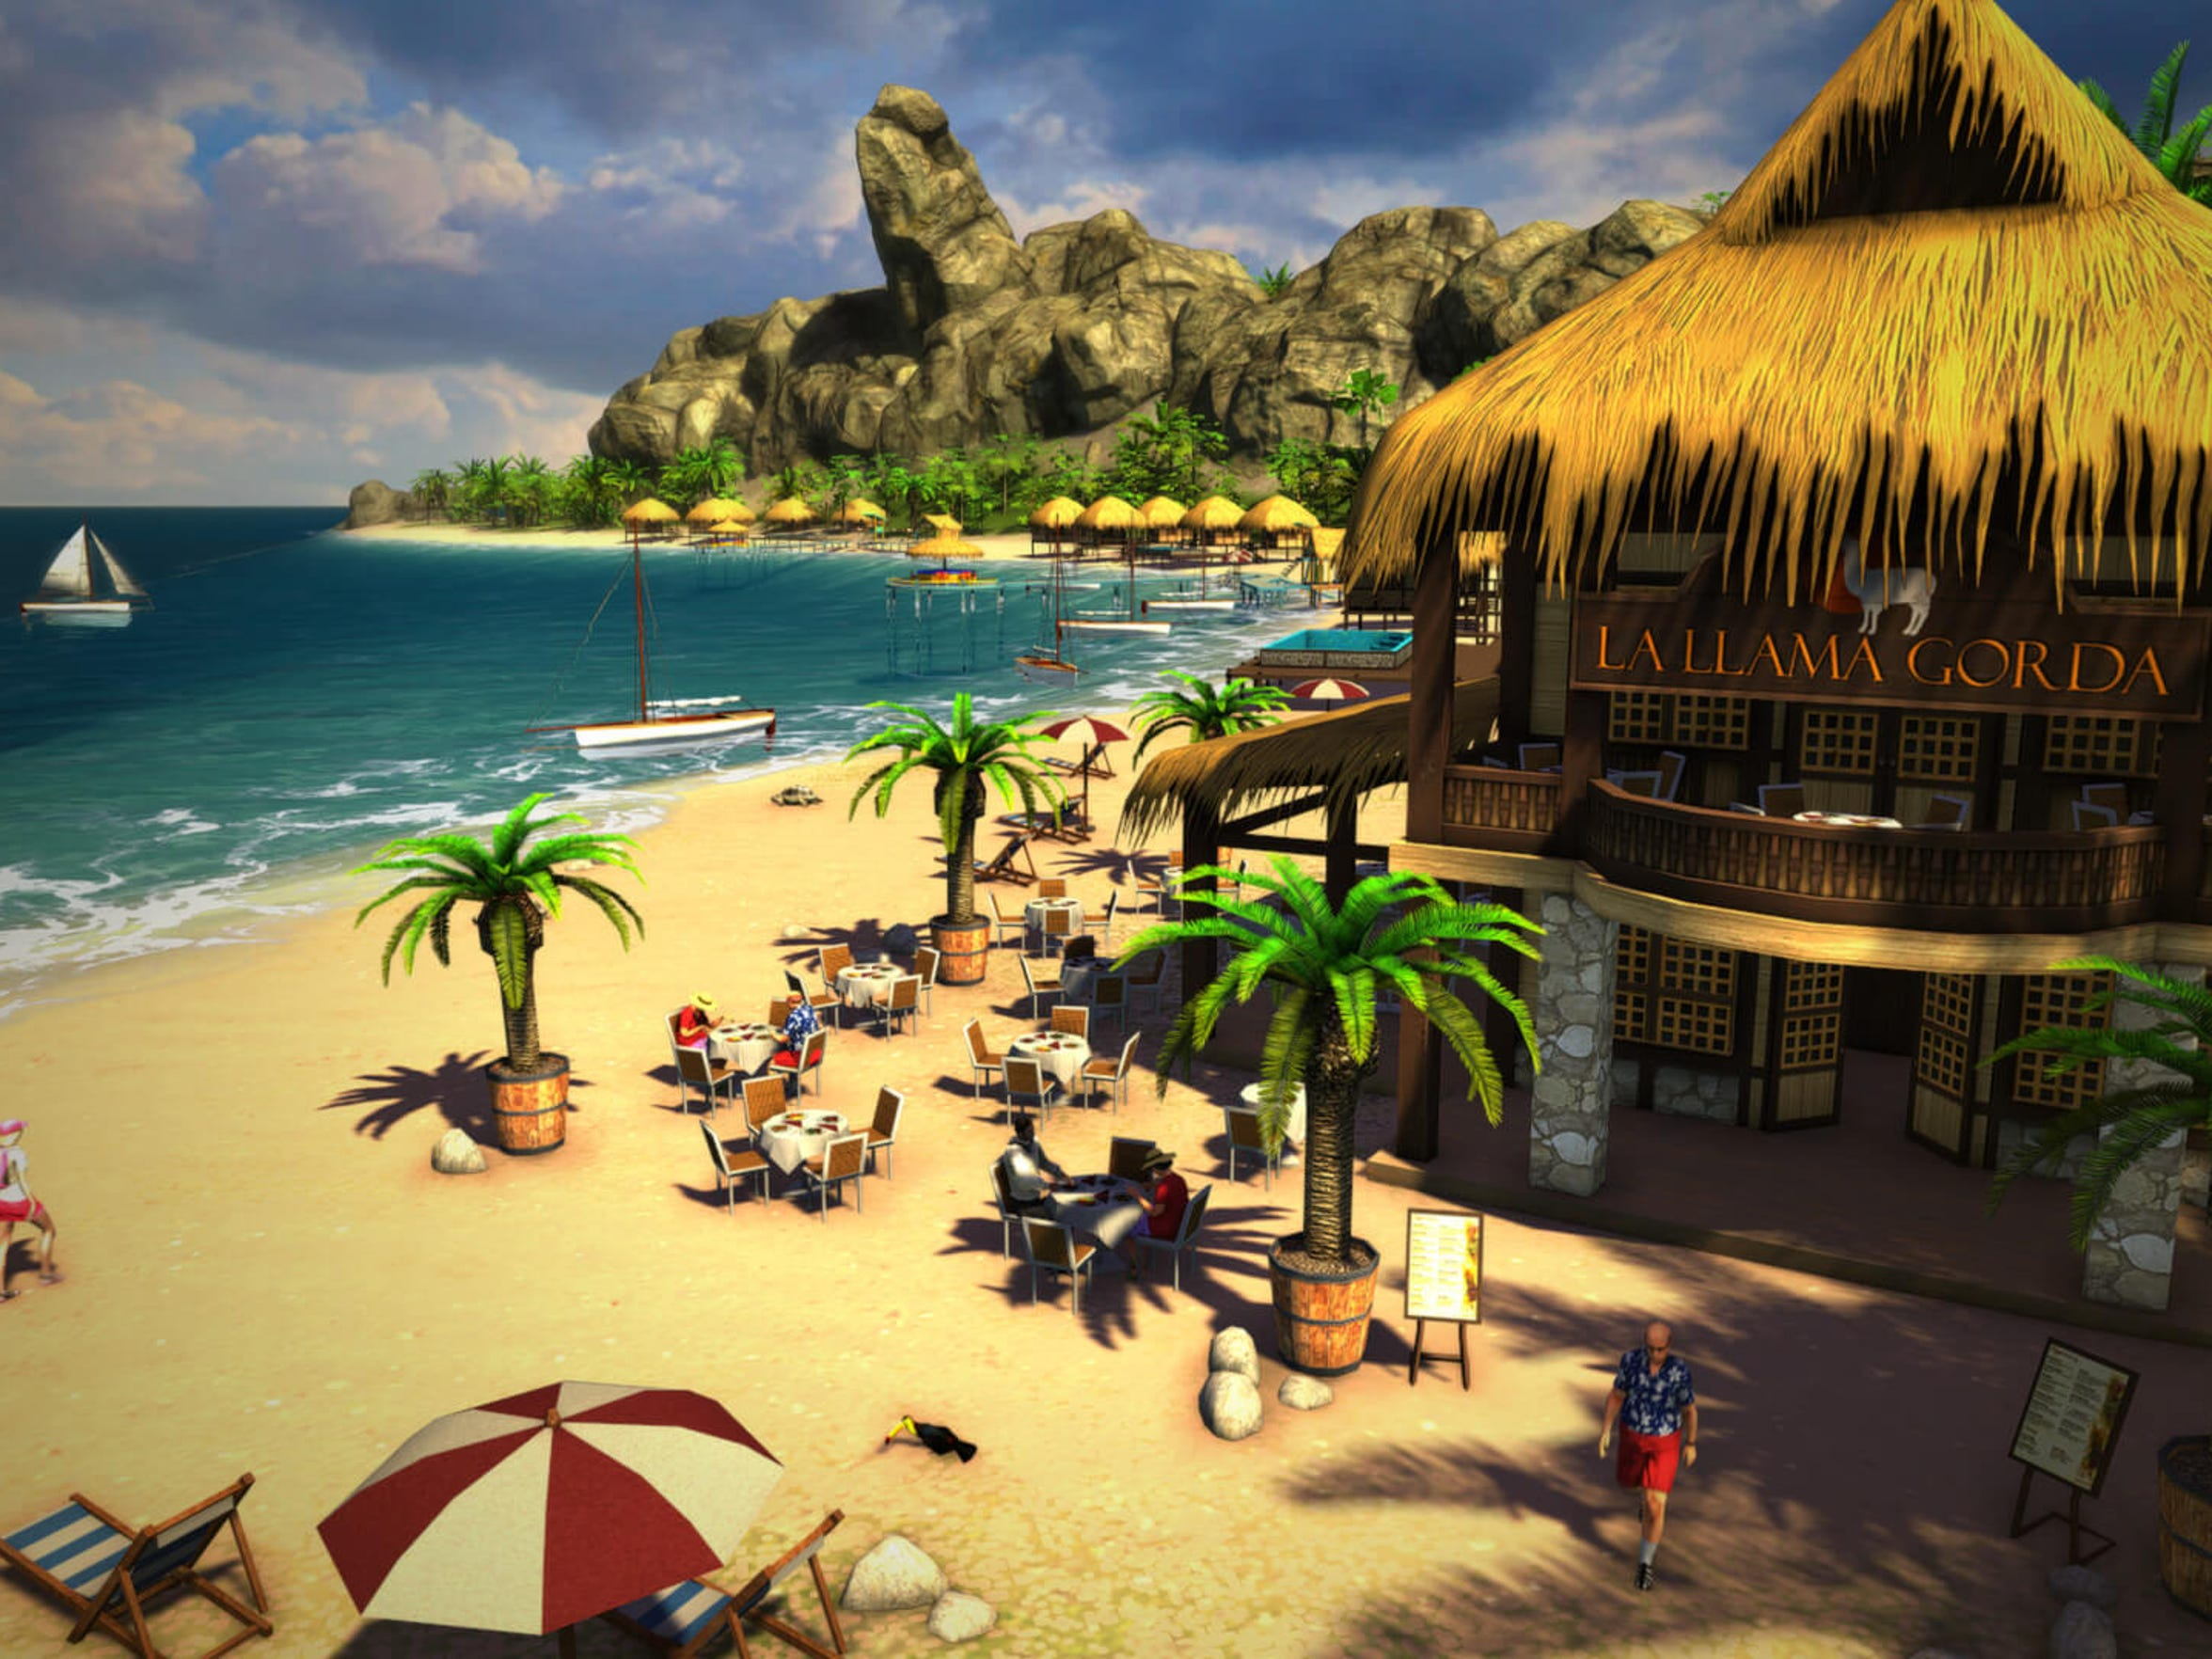 Tropico 5 Penultimate Edition brings the witty island-building game to Xbox One.